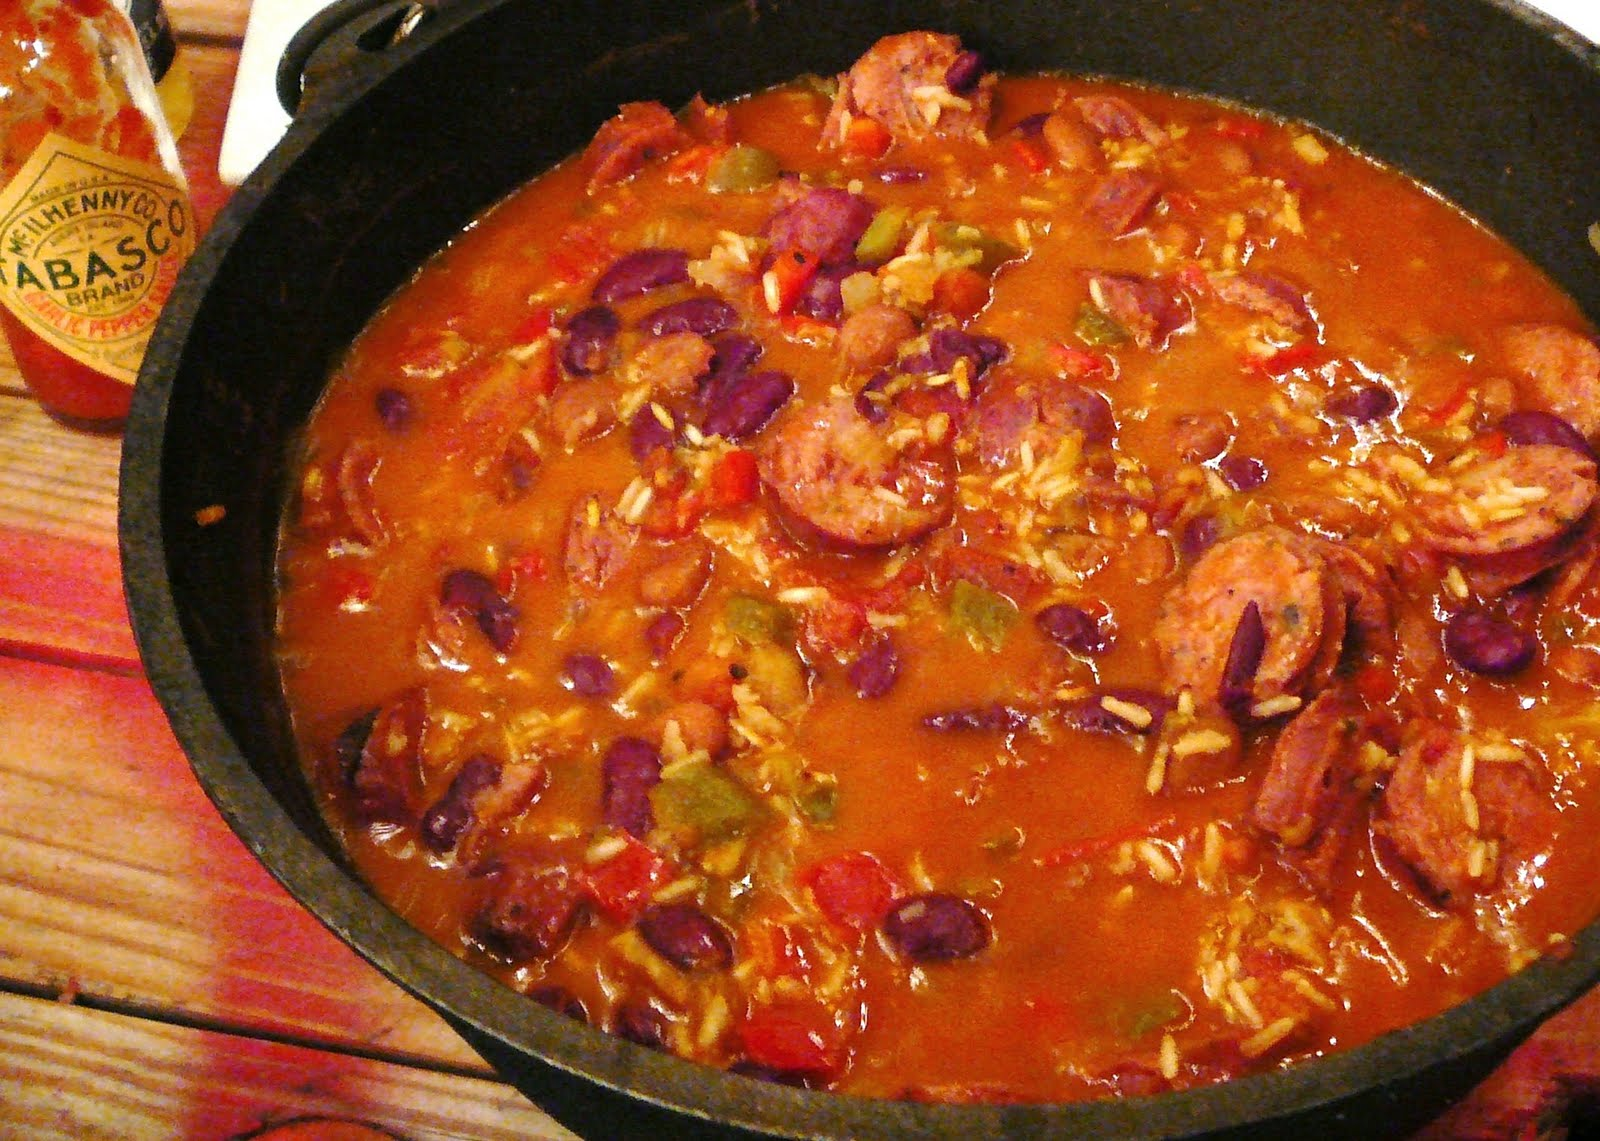 Dutch oven red beans and rice